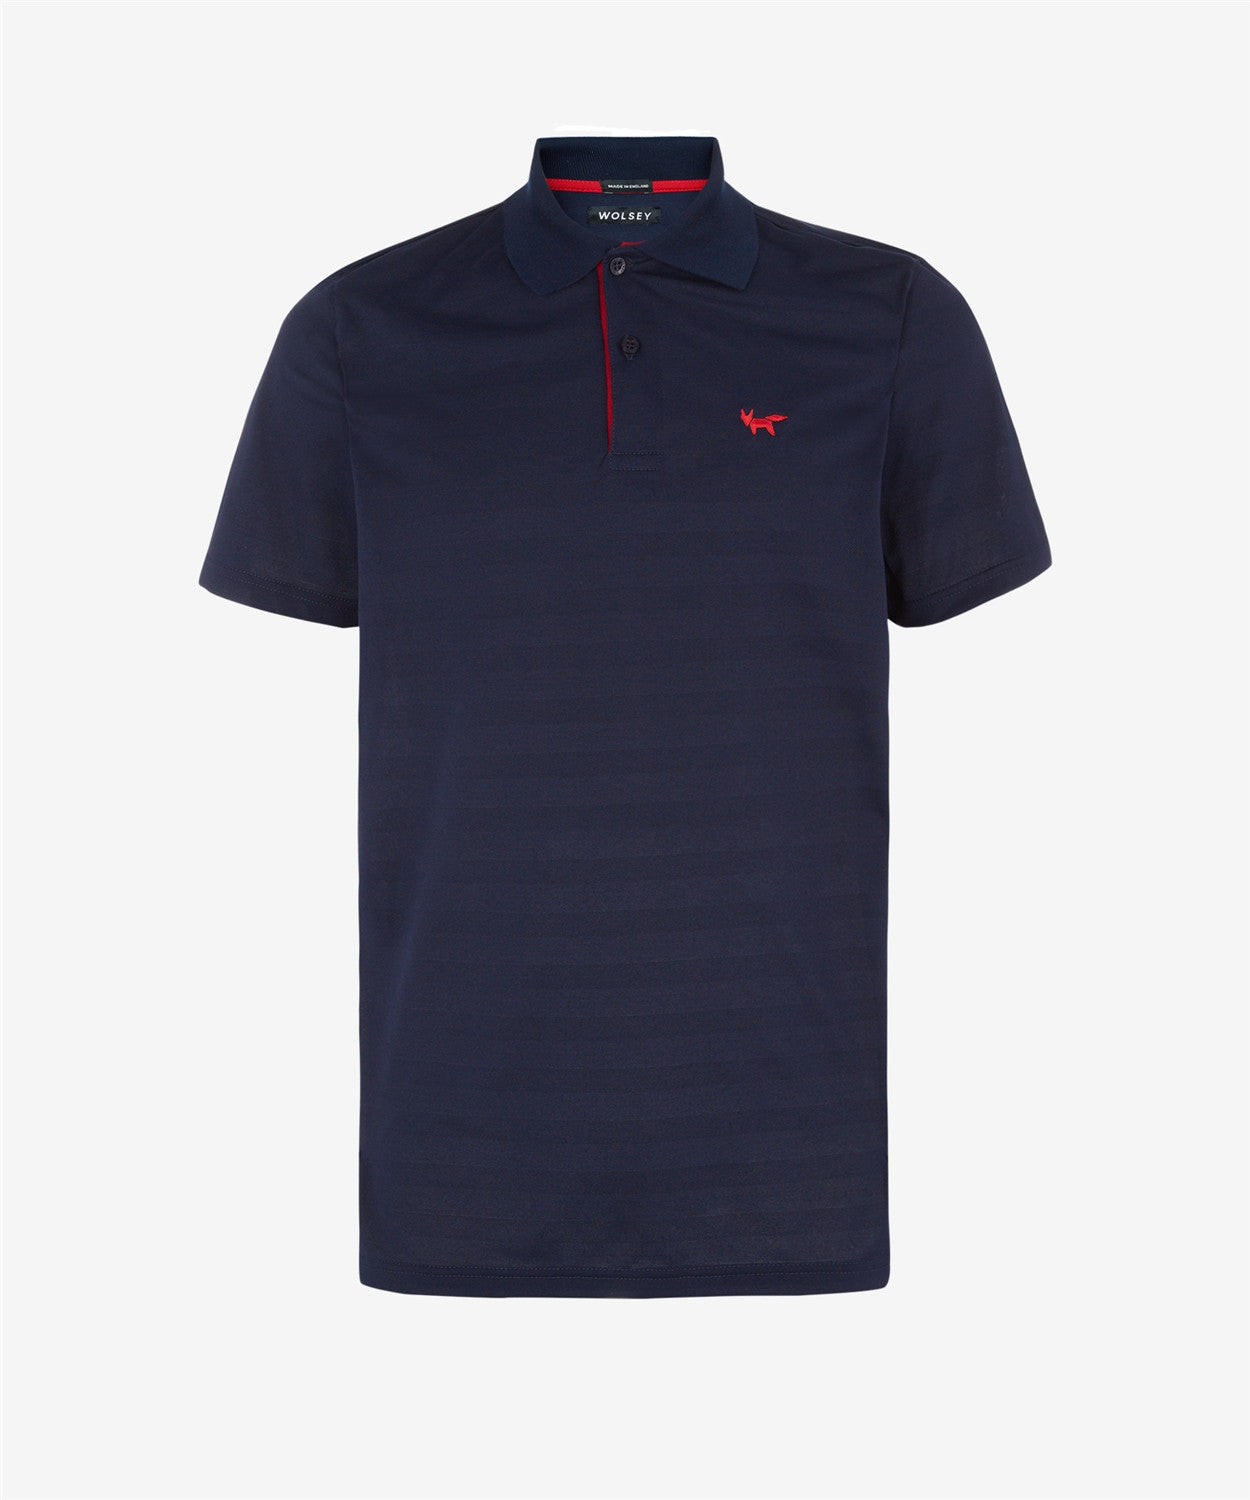 TOTAL ECLIPSE TEXTURED STRIPE TWO BUTTON PIQUE POLO SHIRT